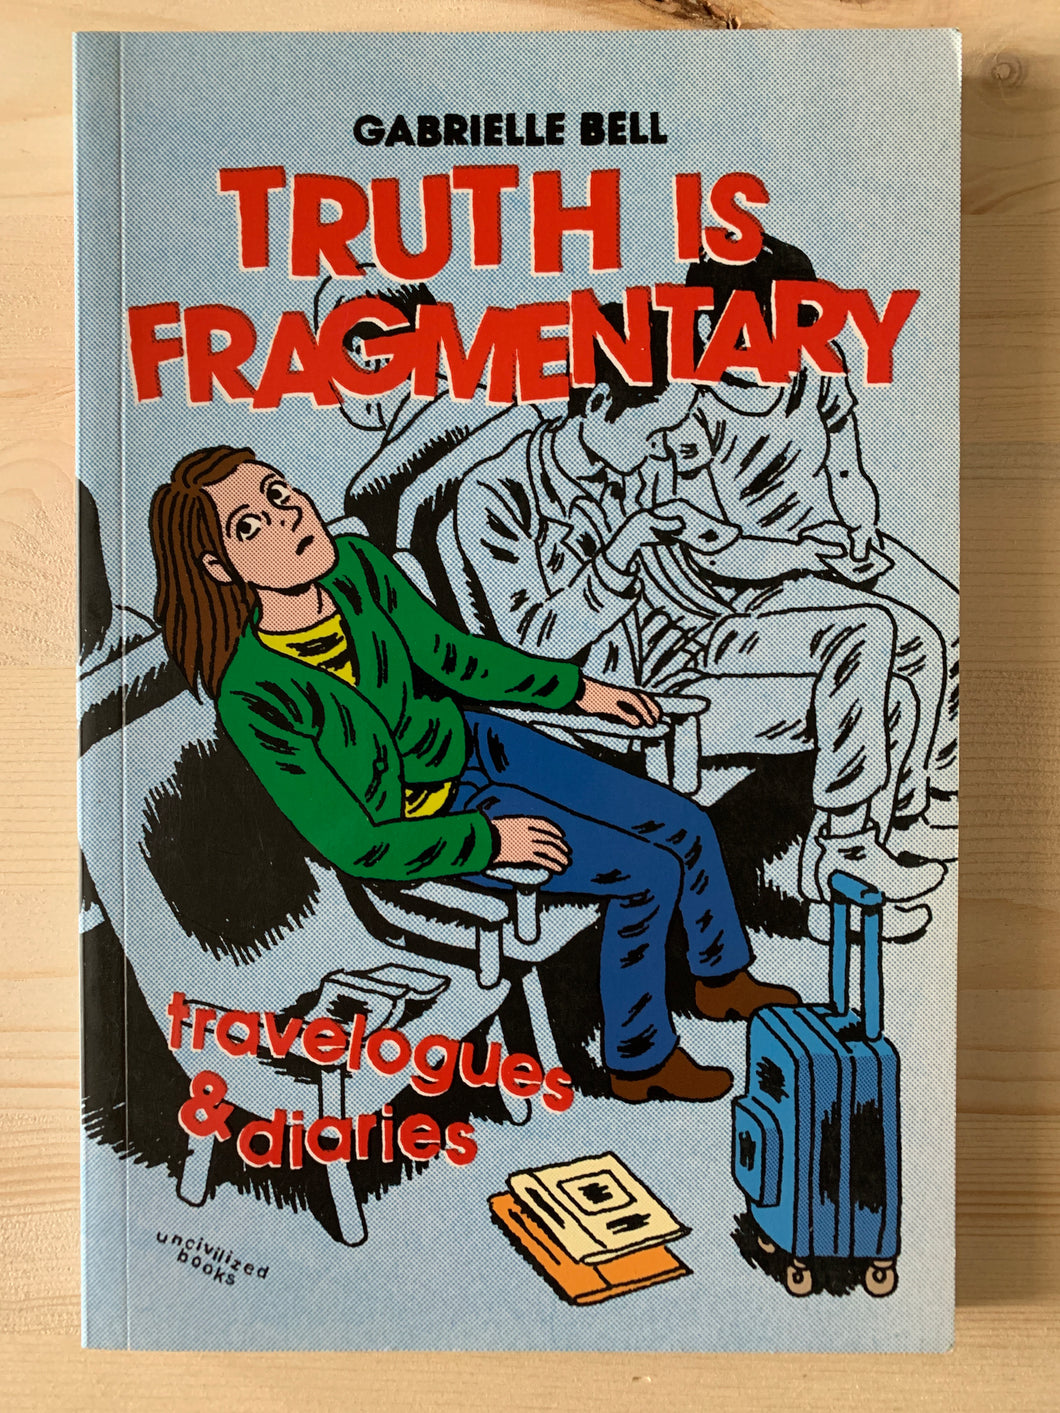 Truth is Fragmentary